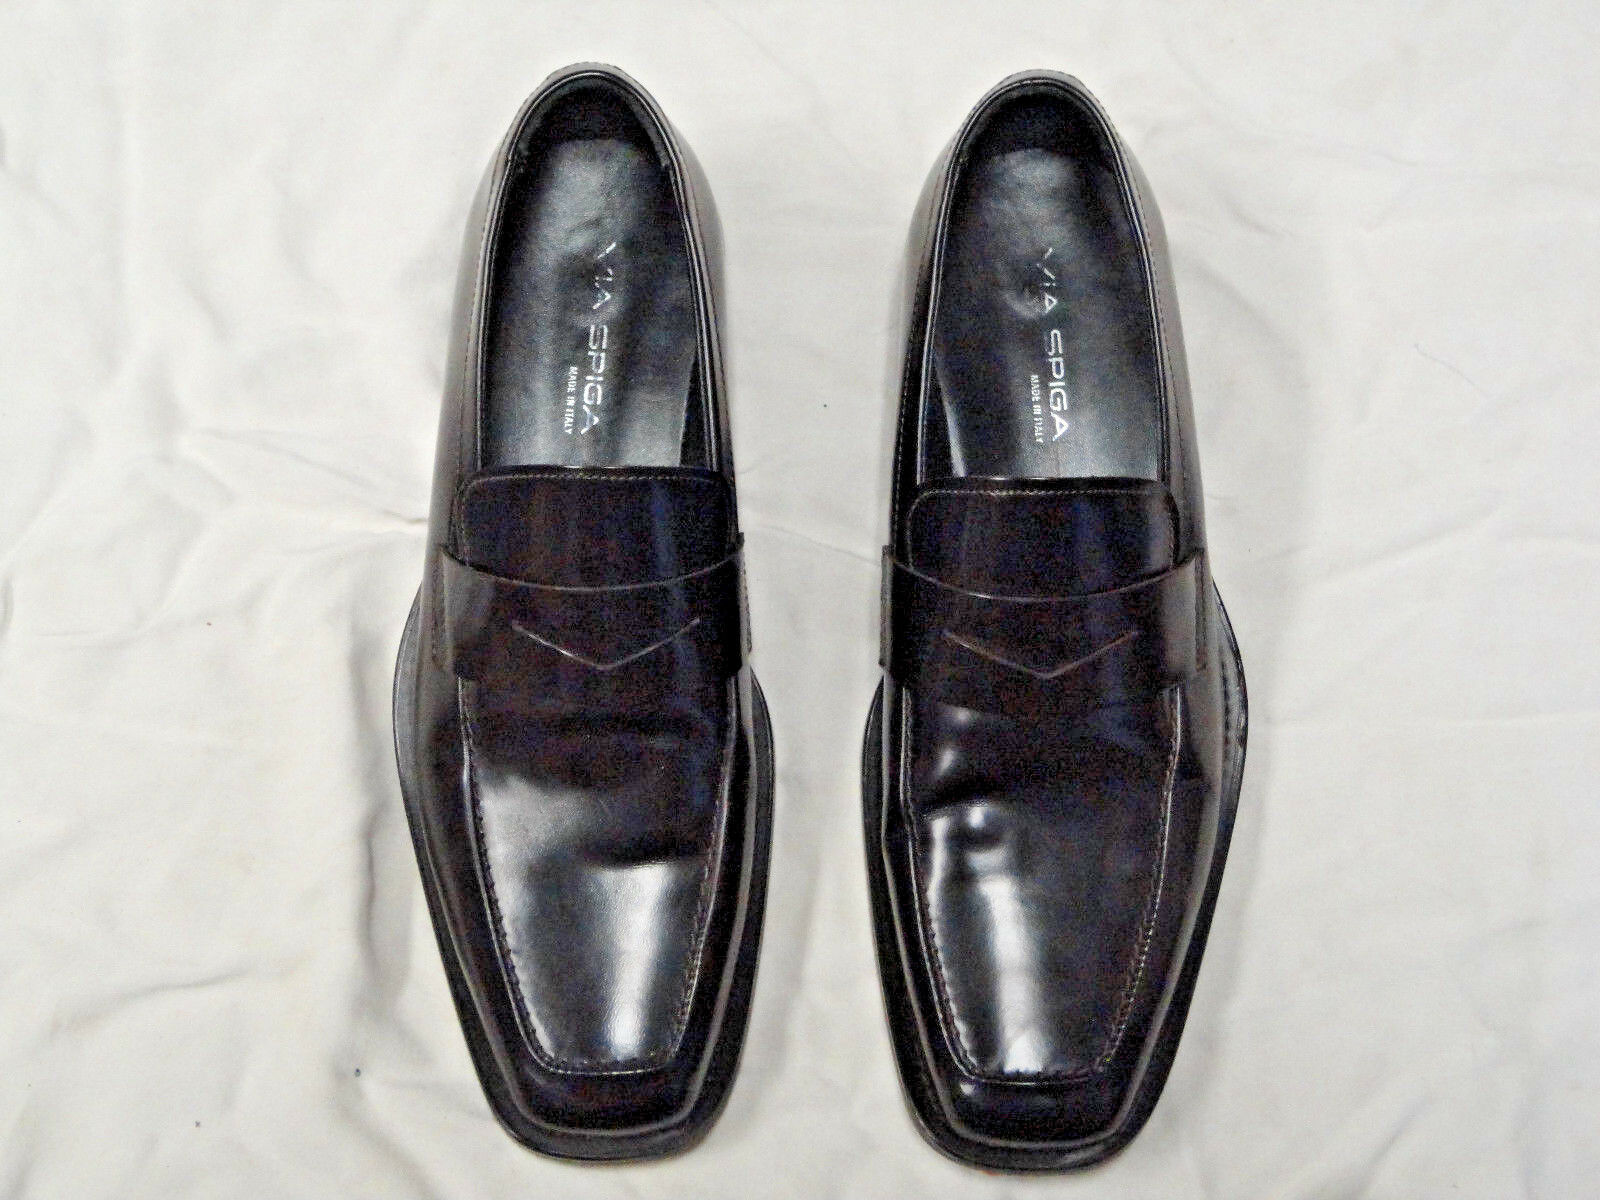 Via Spiga very dark brown loafer style shoe shoe style   Size 9   leather sole f7c380